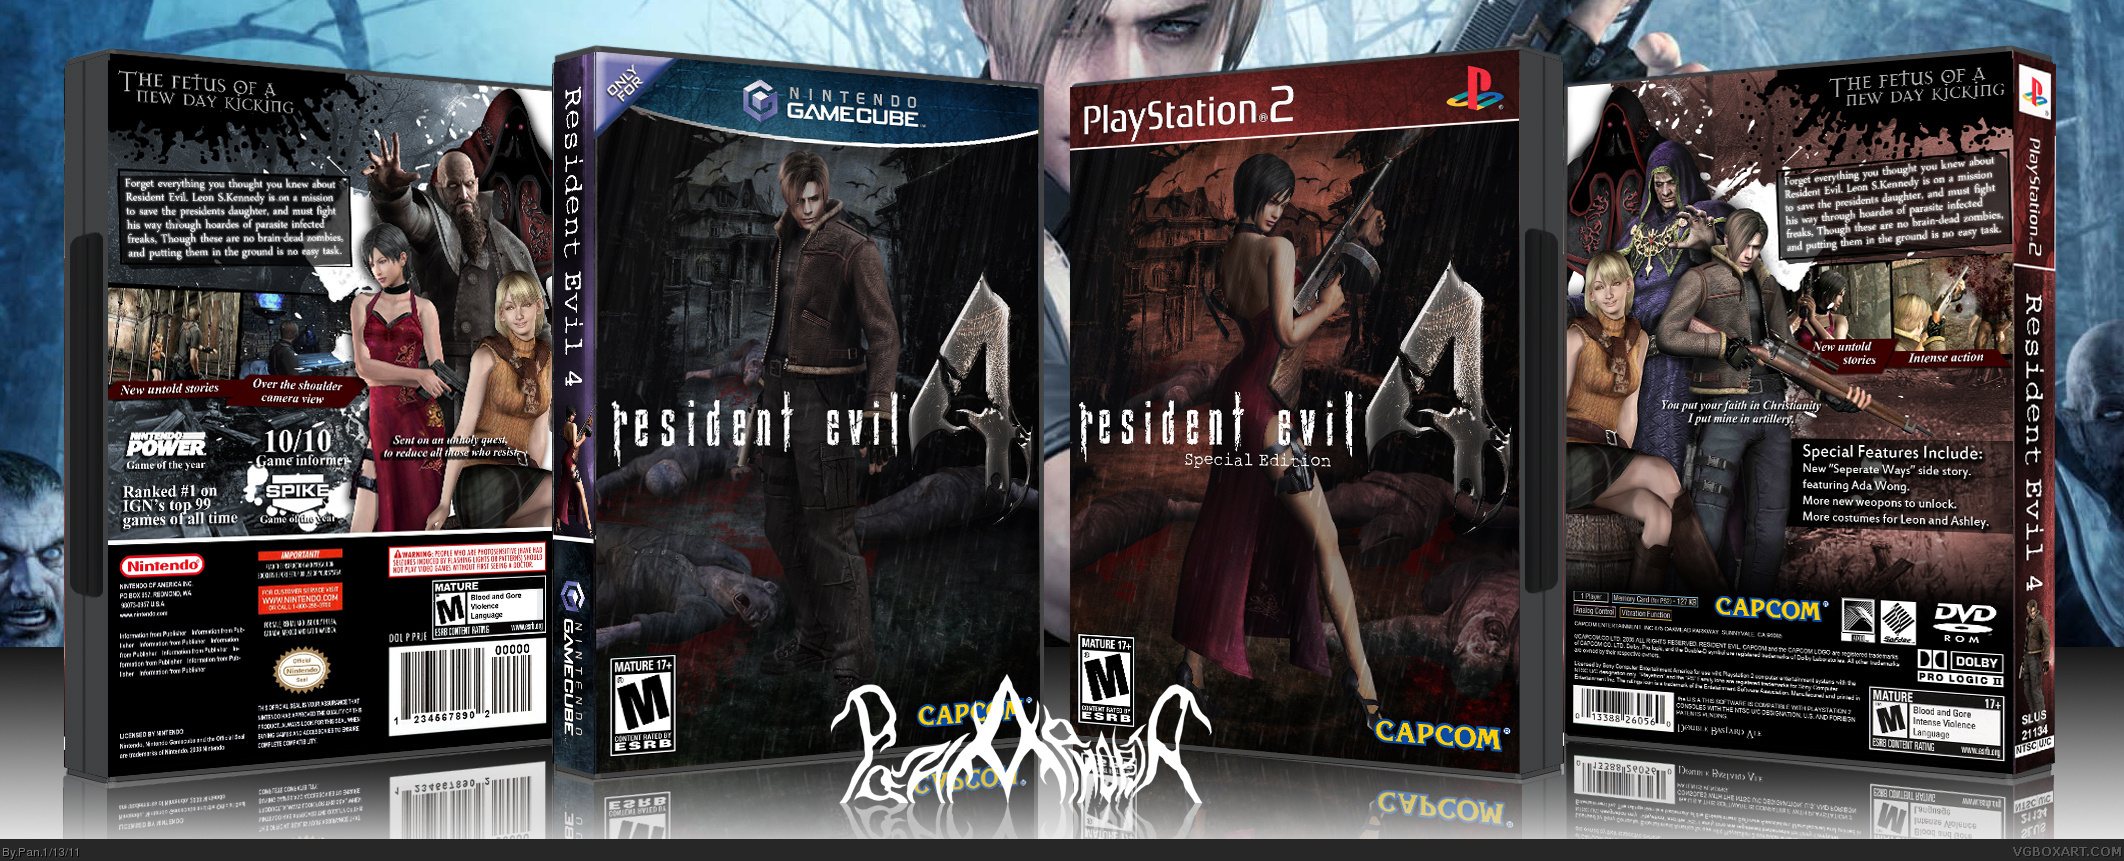 Resident Evil 4 Playstation 2 Box Art Cover By Pan